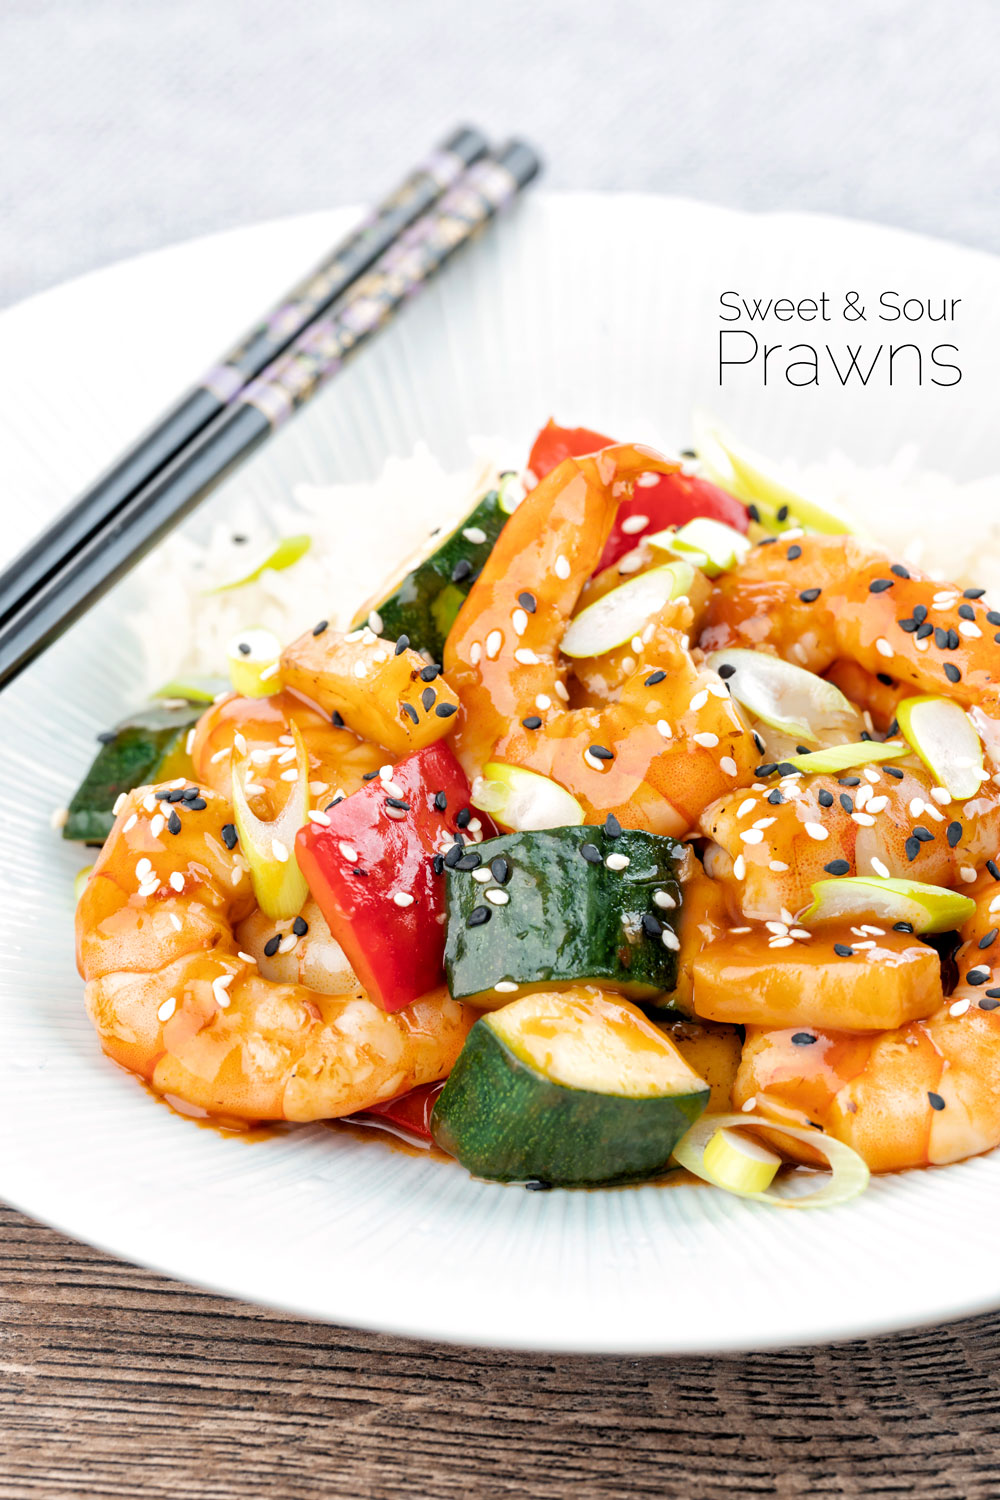 Sweet and sour prawns stir fry with peppers, pineapple & courgette featuring a title overlay.